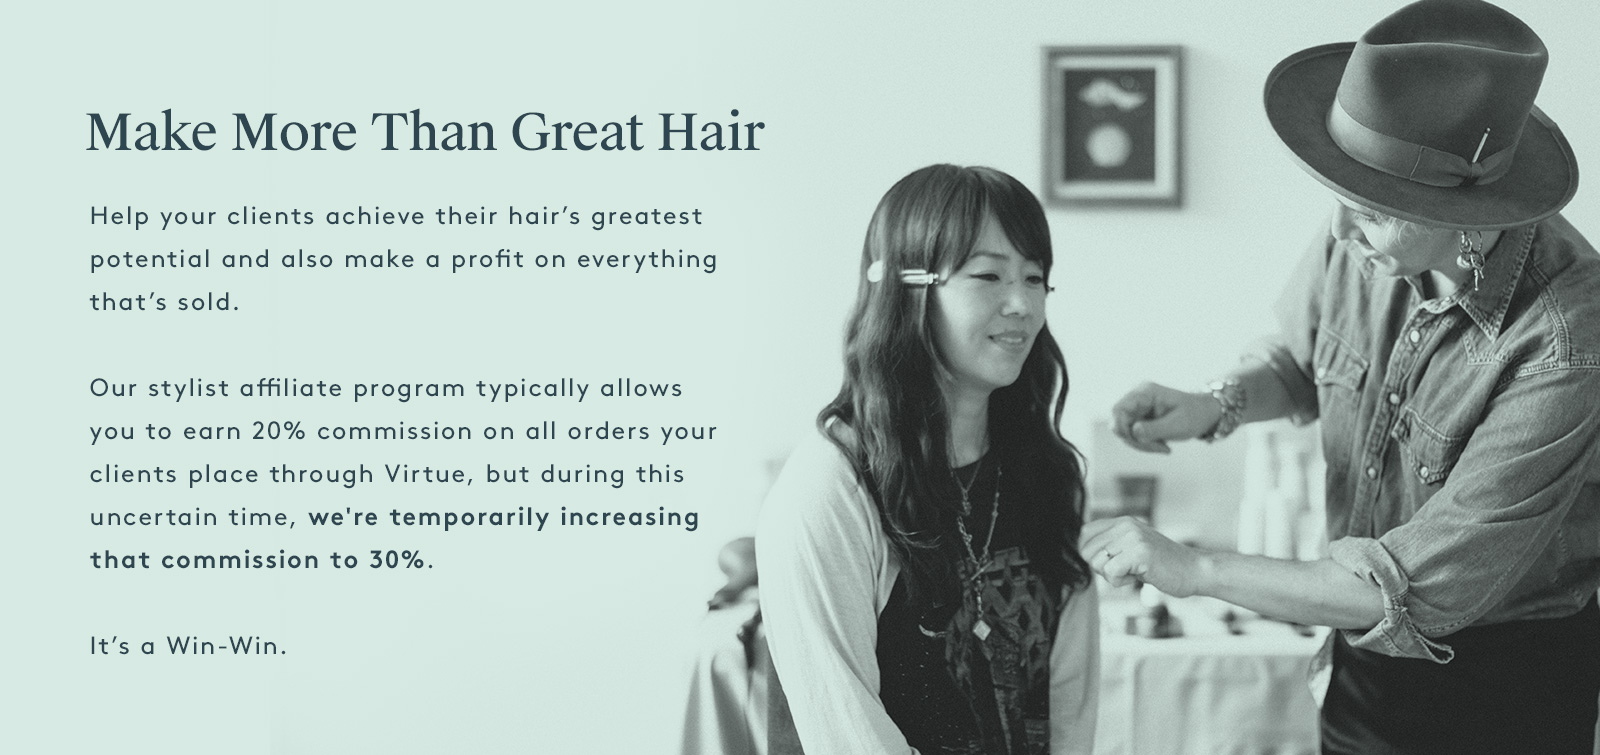 Make More Than Great Hair